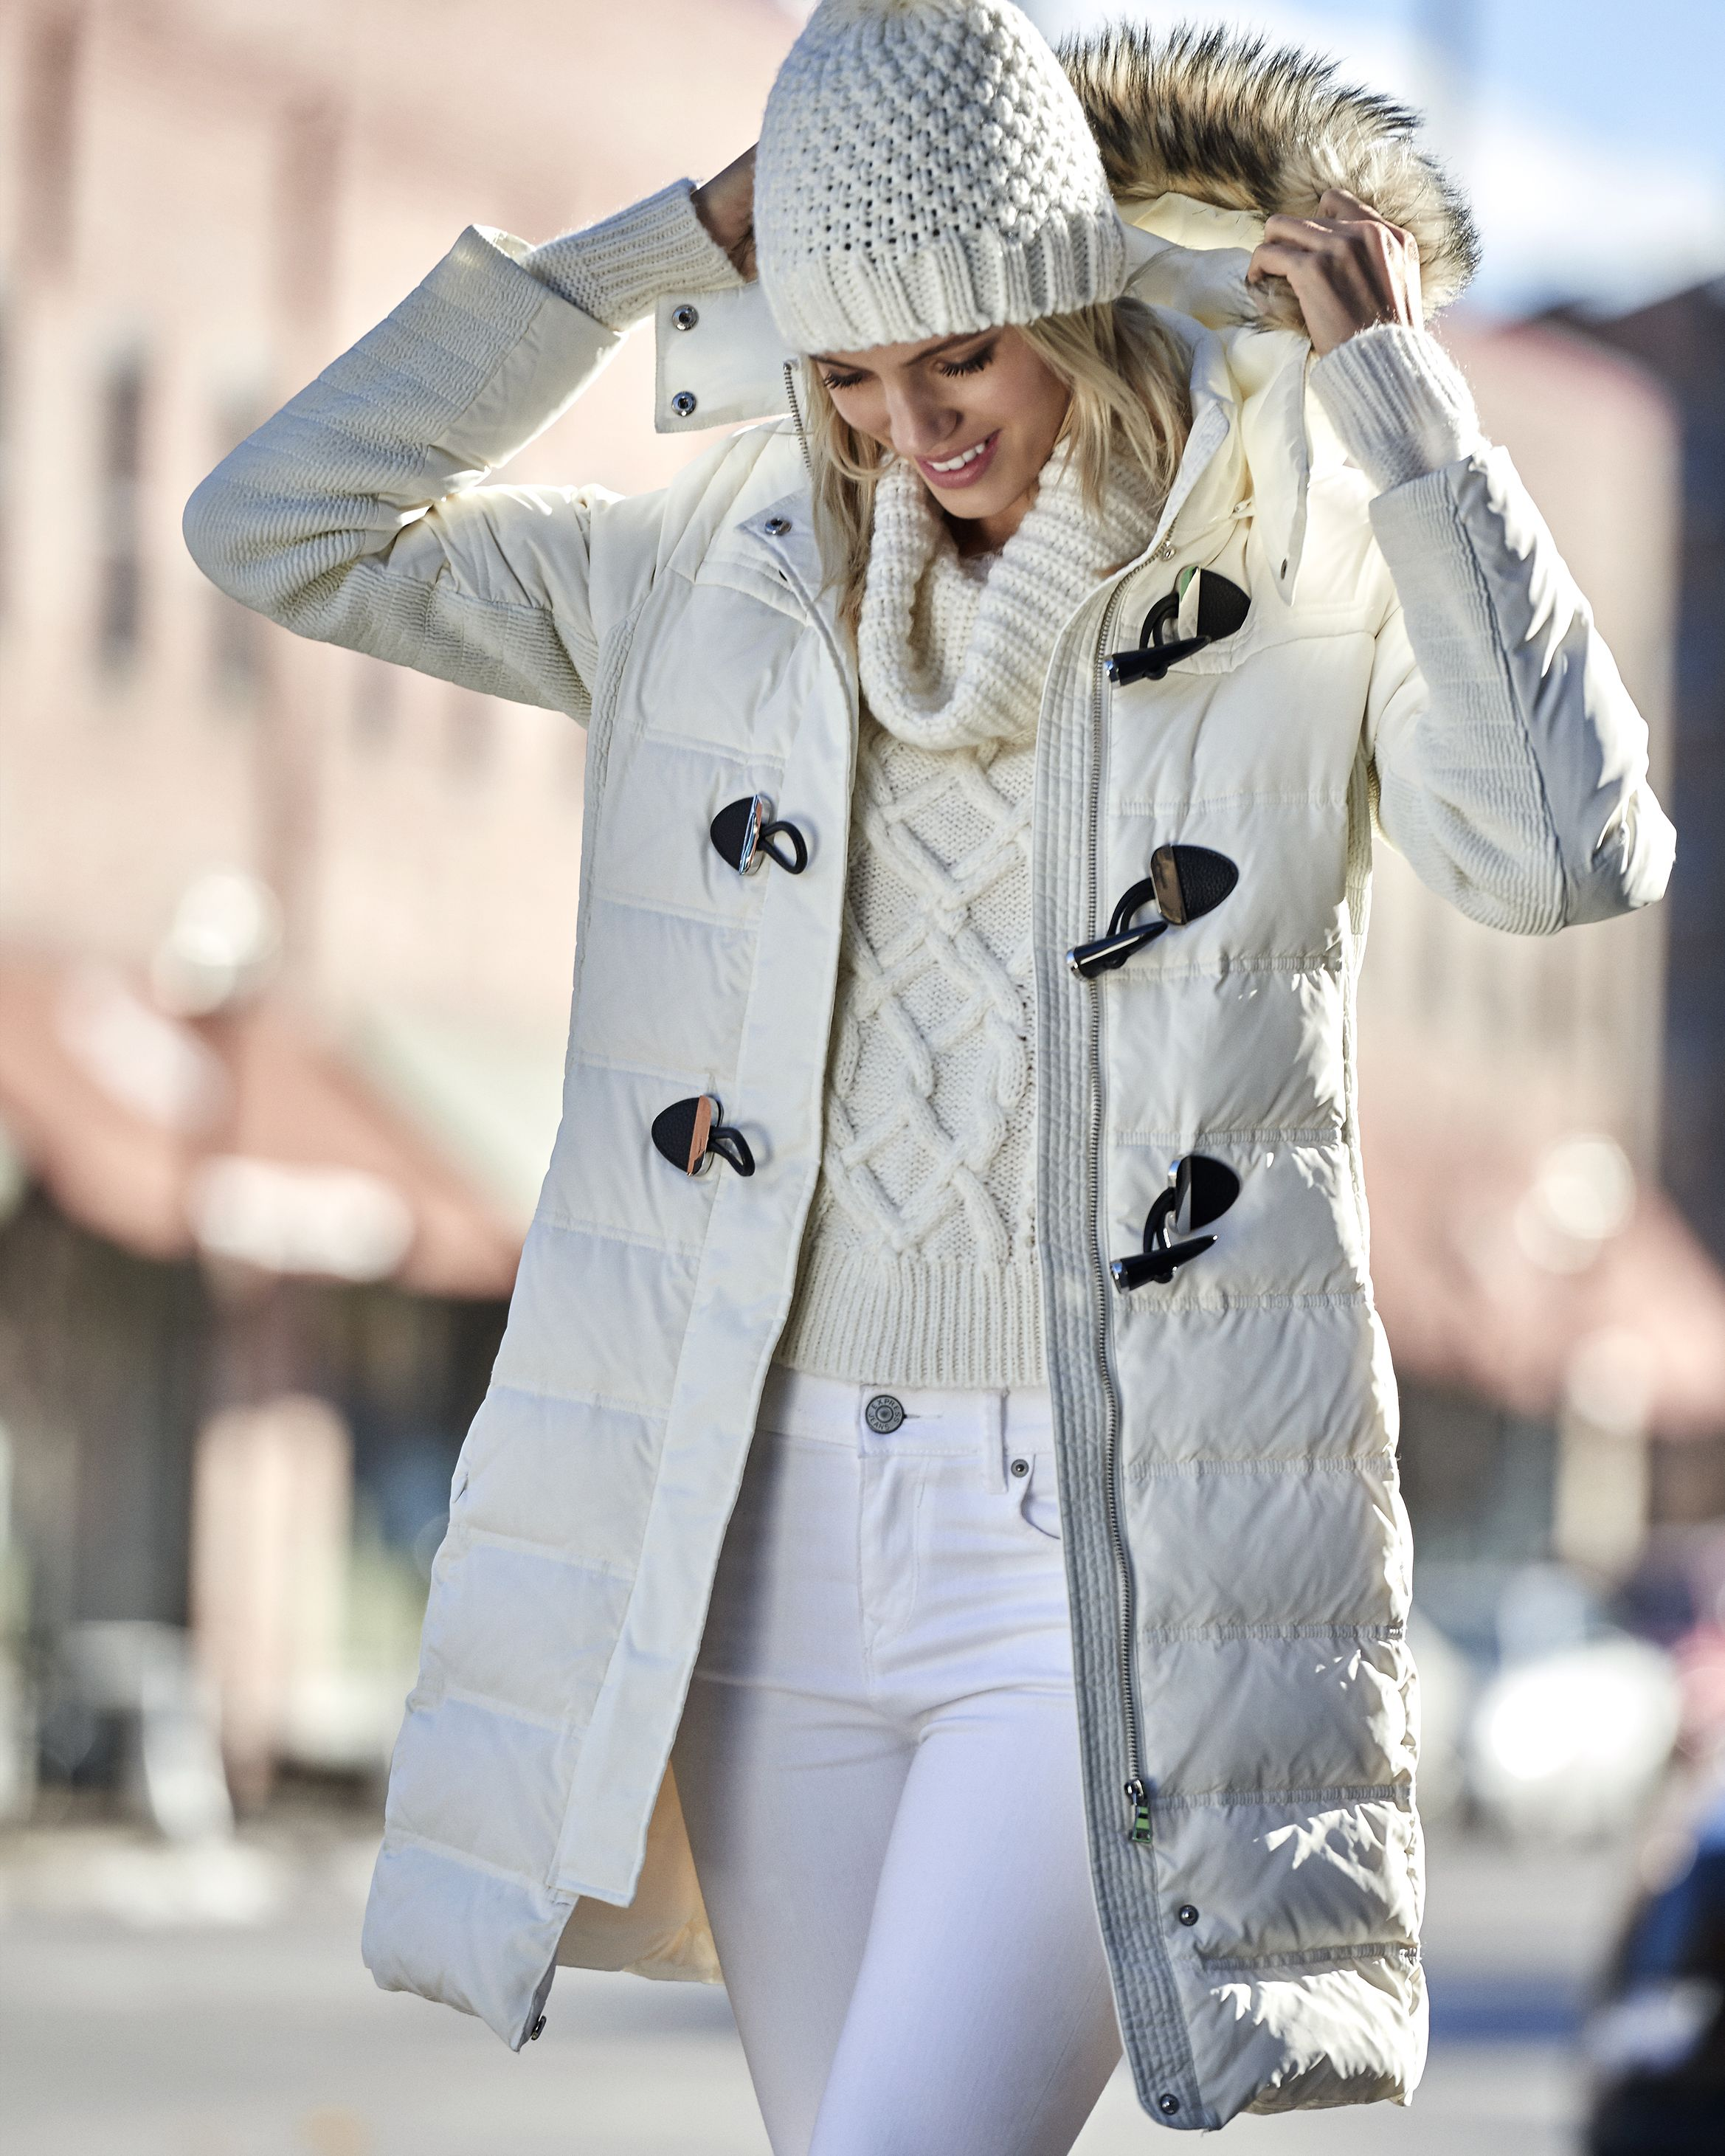 Ample warmth and coverage in a smart and flattering style. This down coat's fitted look is supported by smocking at the waistline and complemented by three polished toggle closures and a faux fur-lined hood.